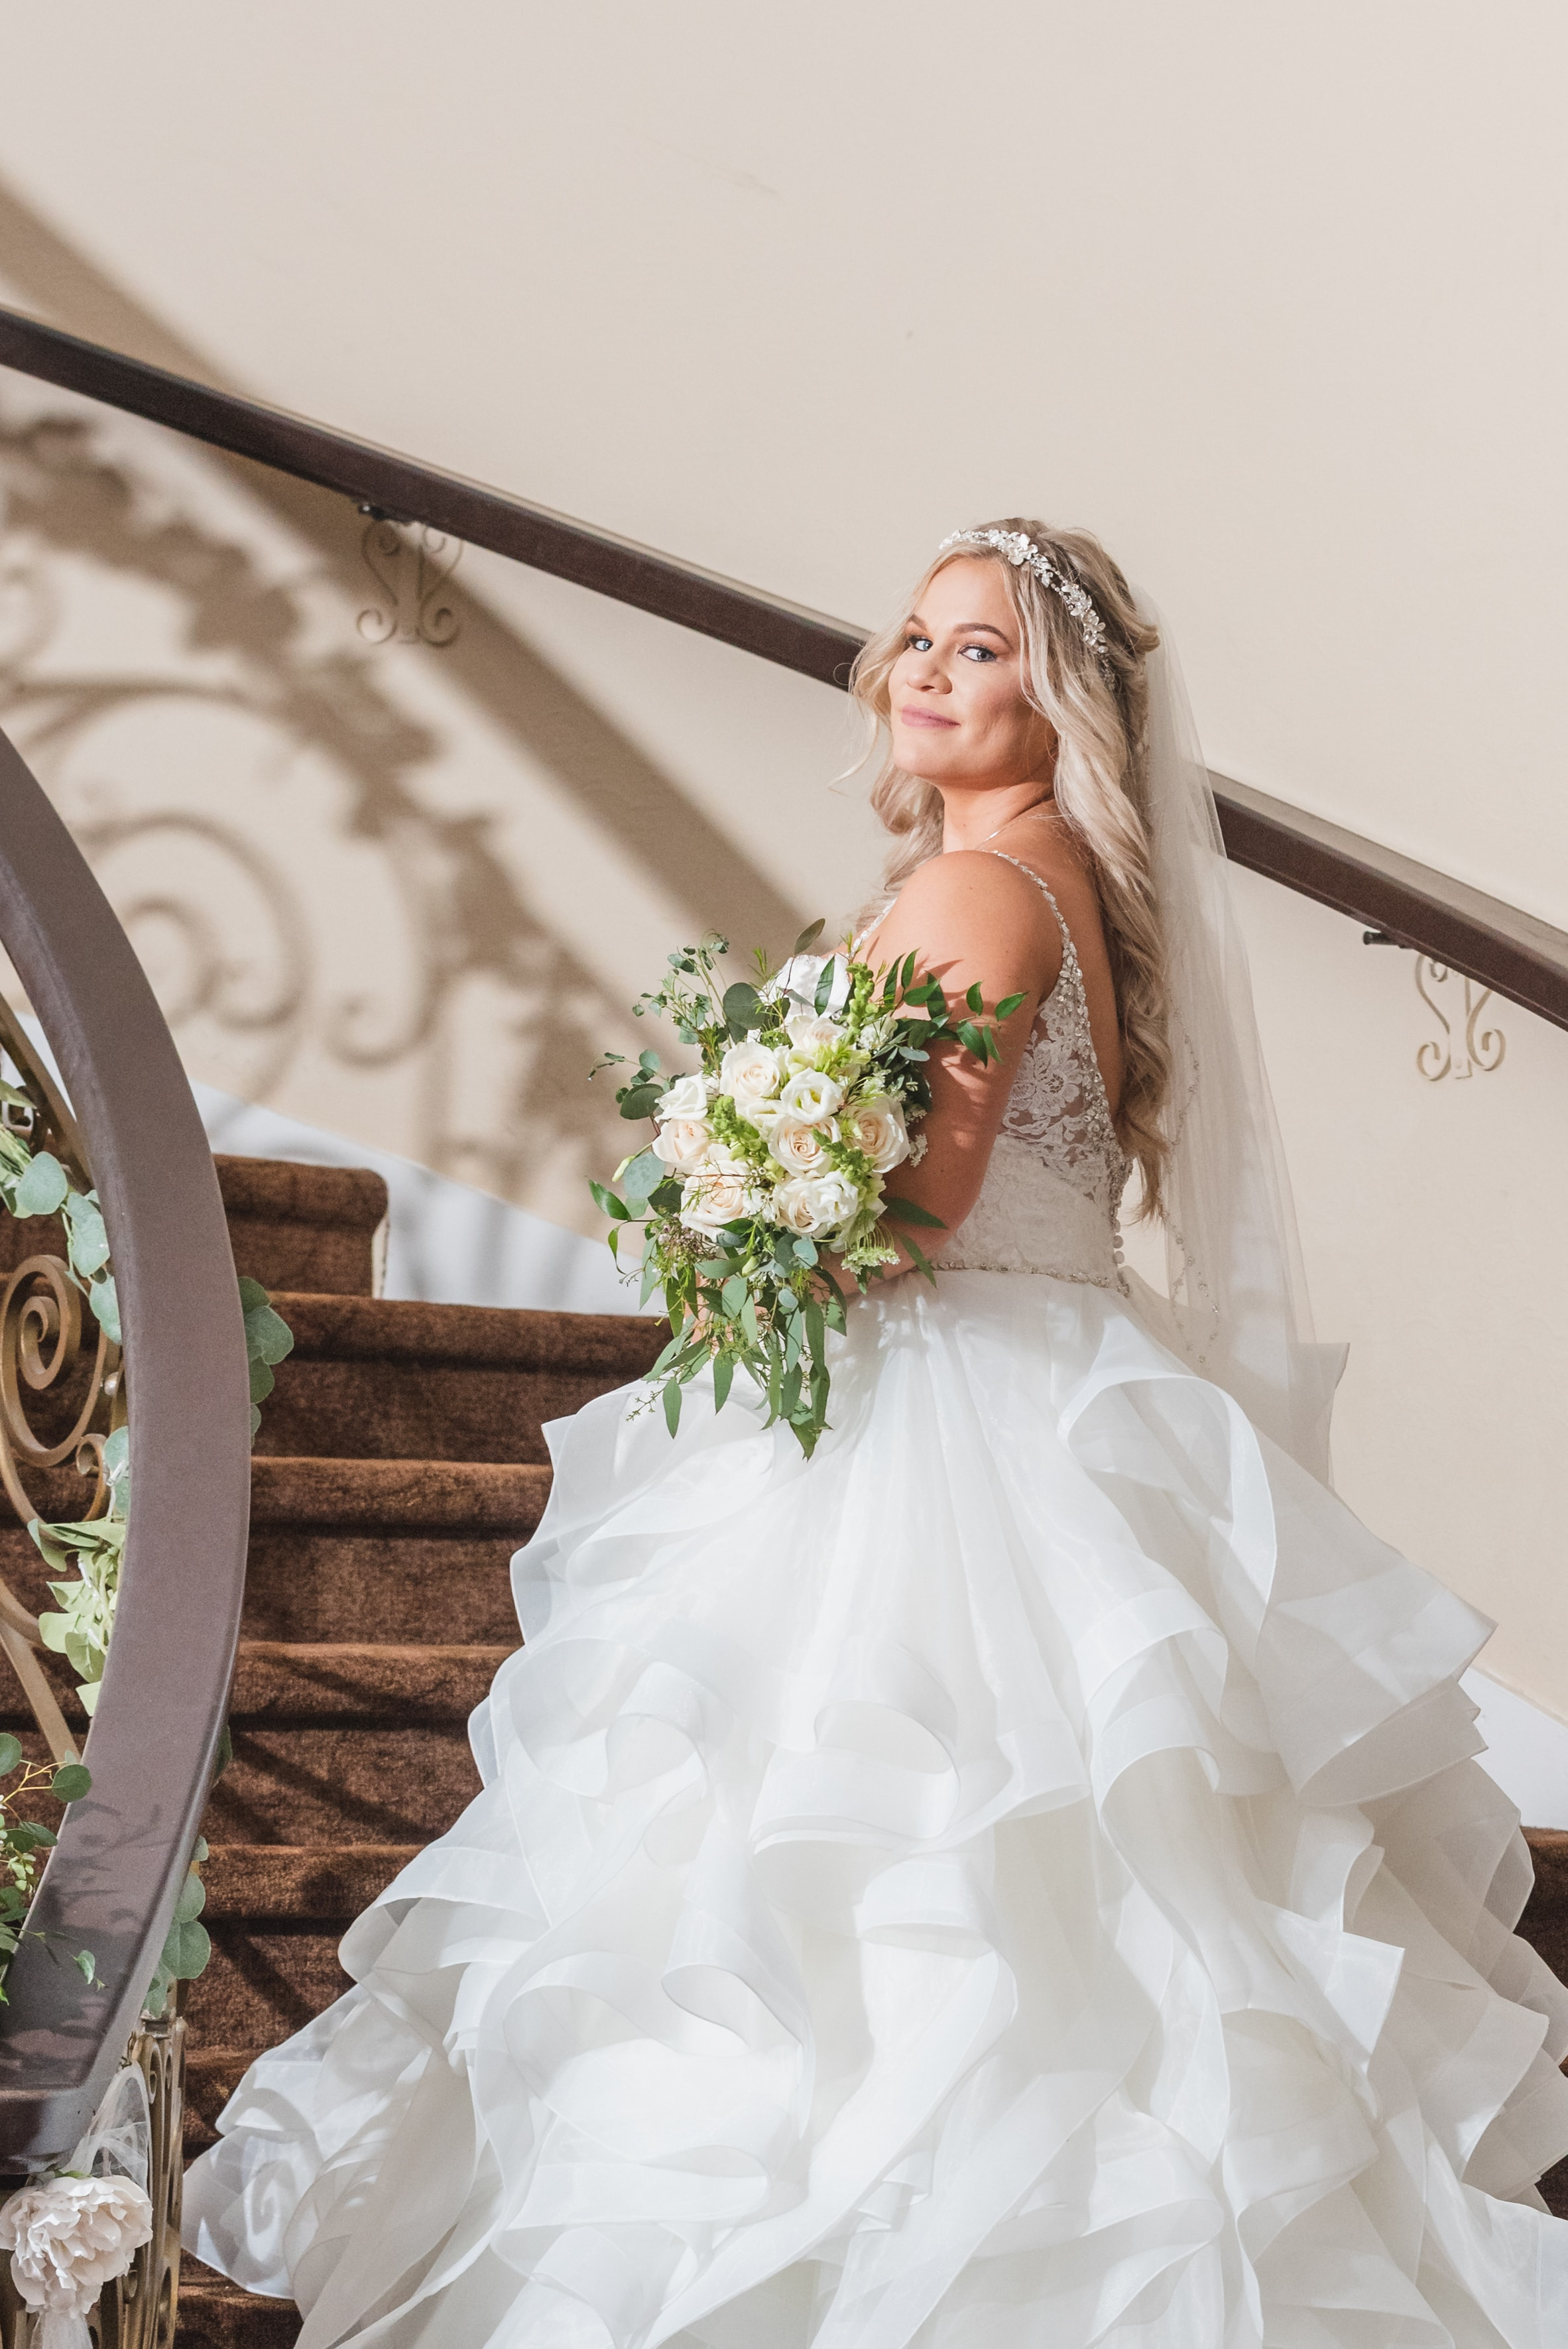 Bride in her wedding dress looking back over her shoulder as she climbs a curving staircase.